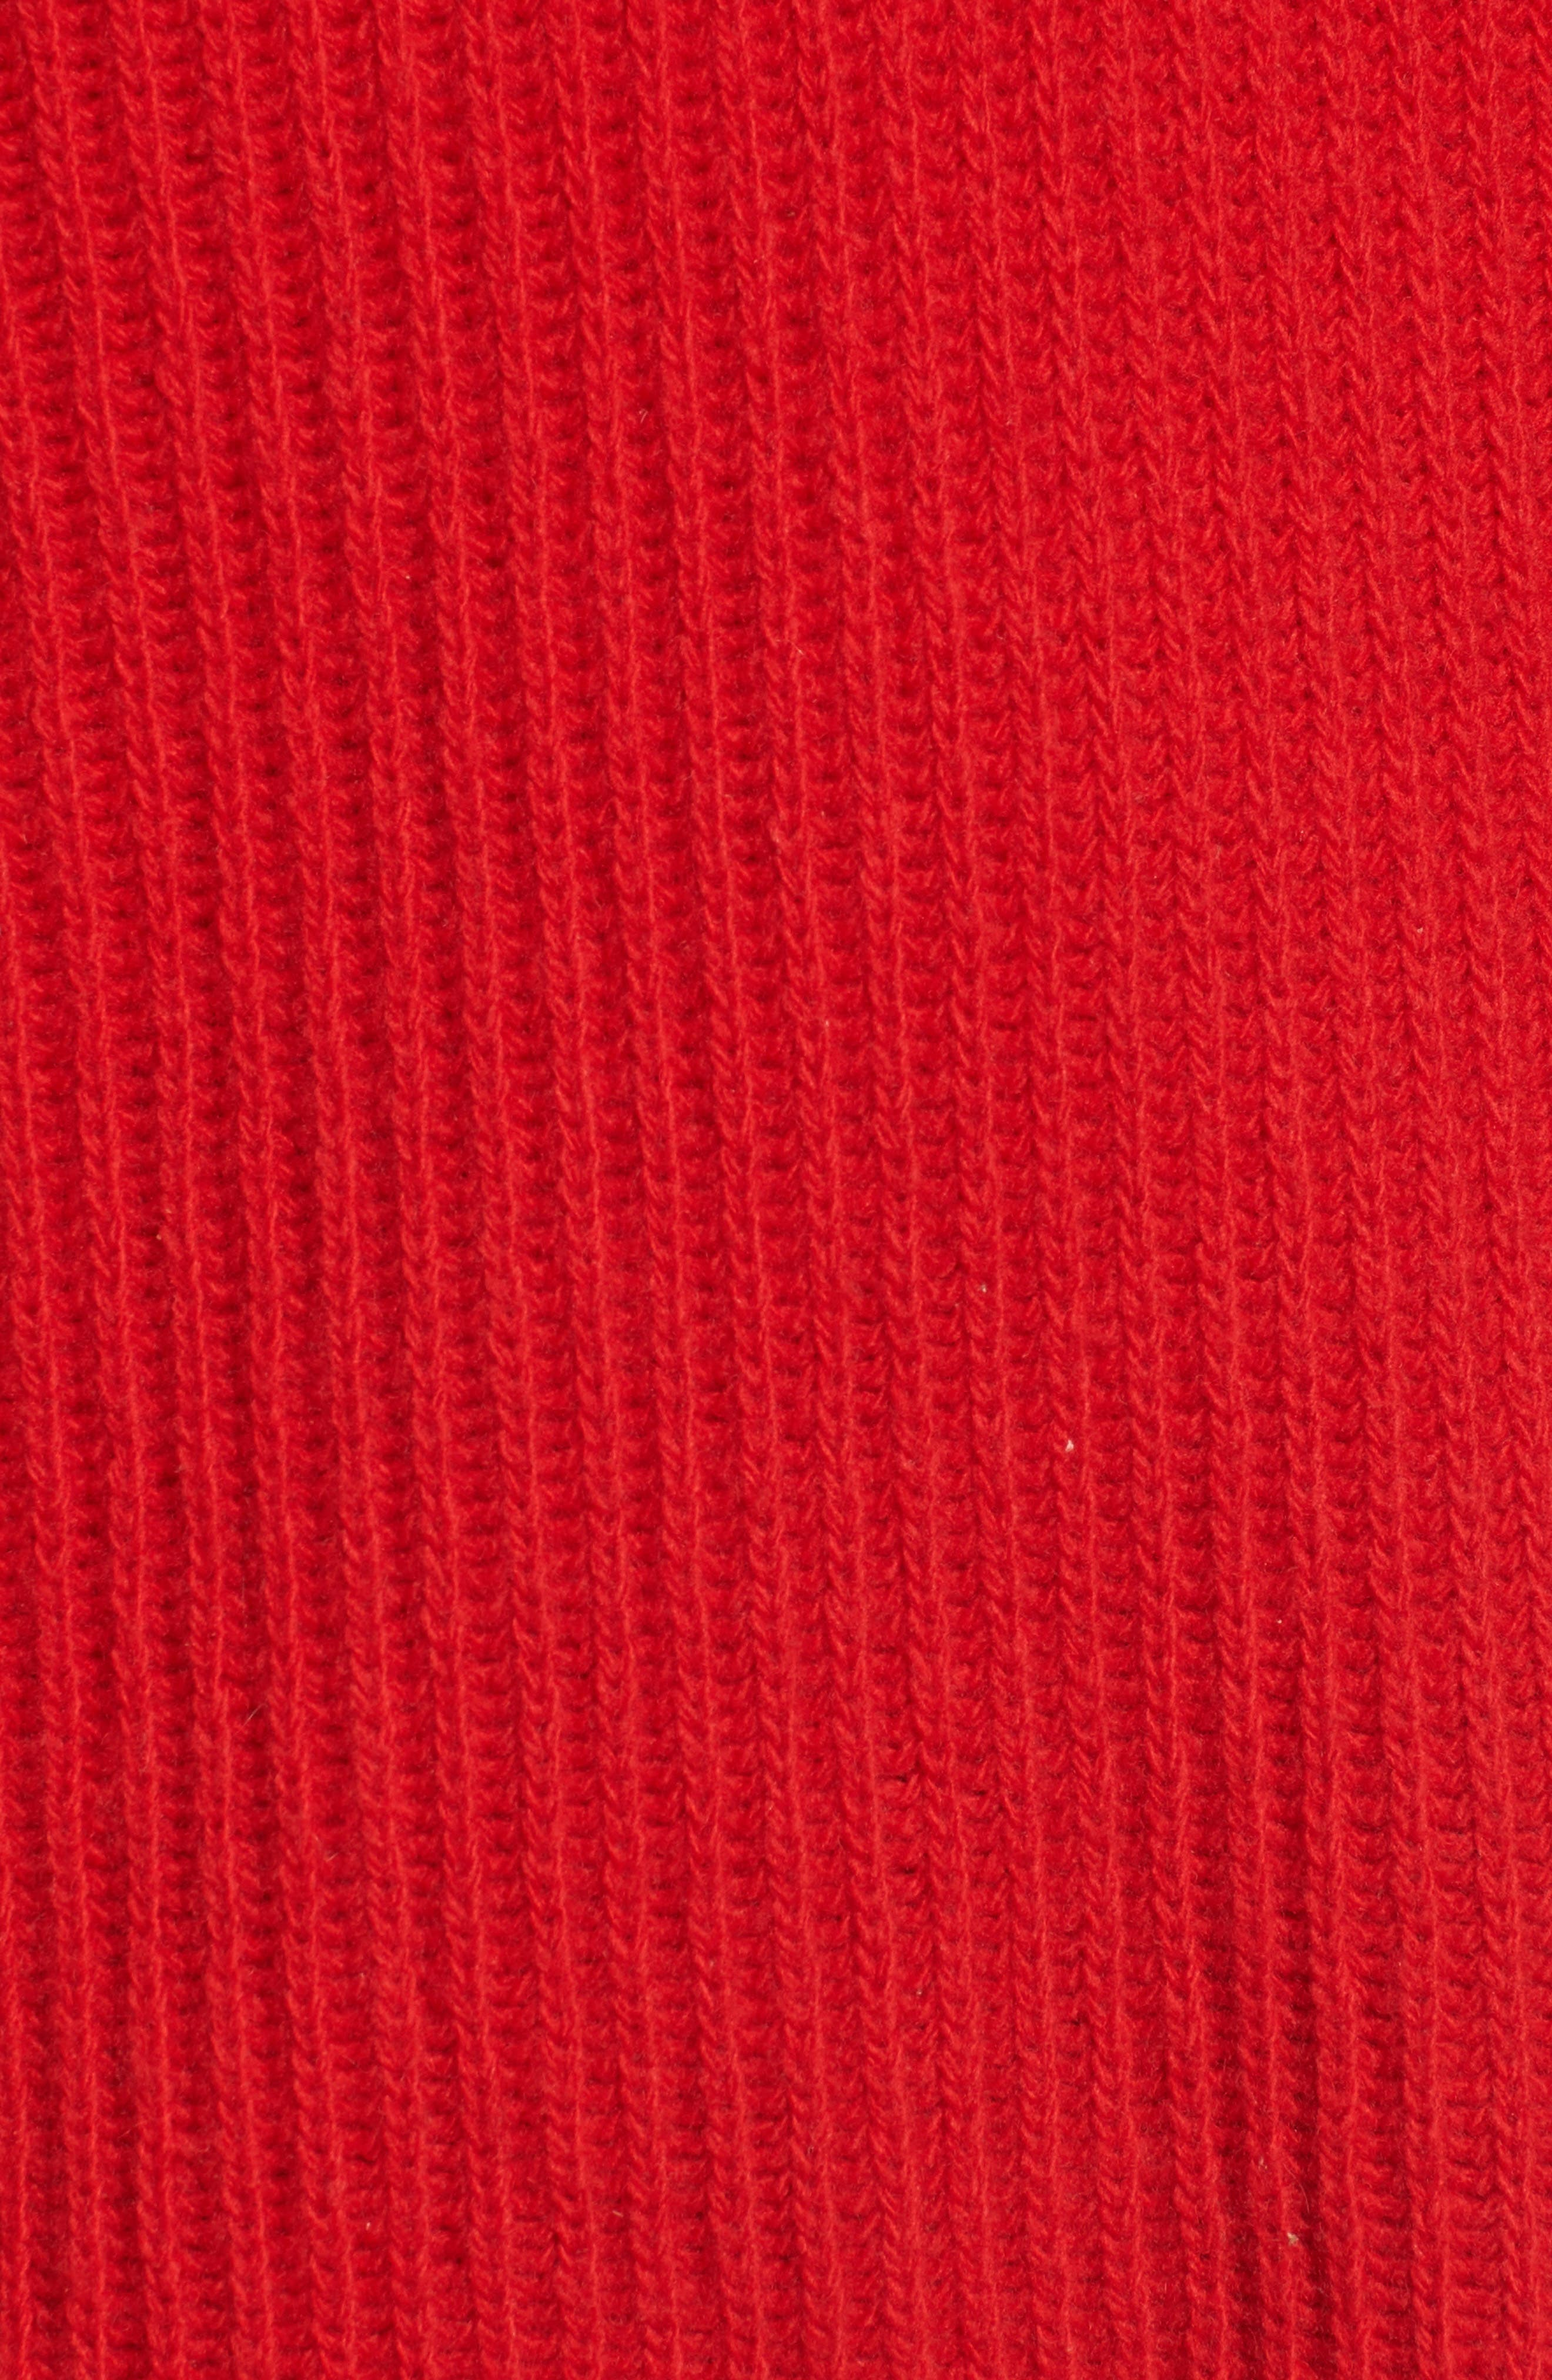 Kassy Wool Blend Sweater,                             Alternate thumbnail 5, color,                             Rouge